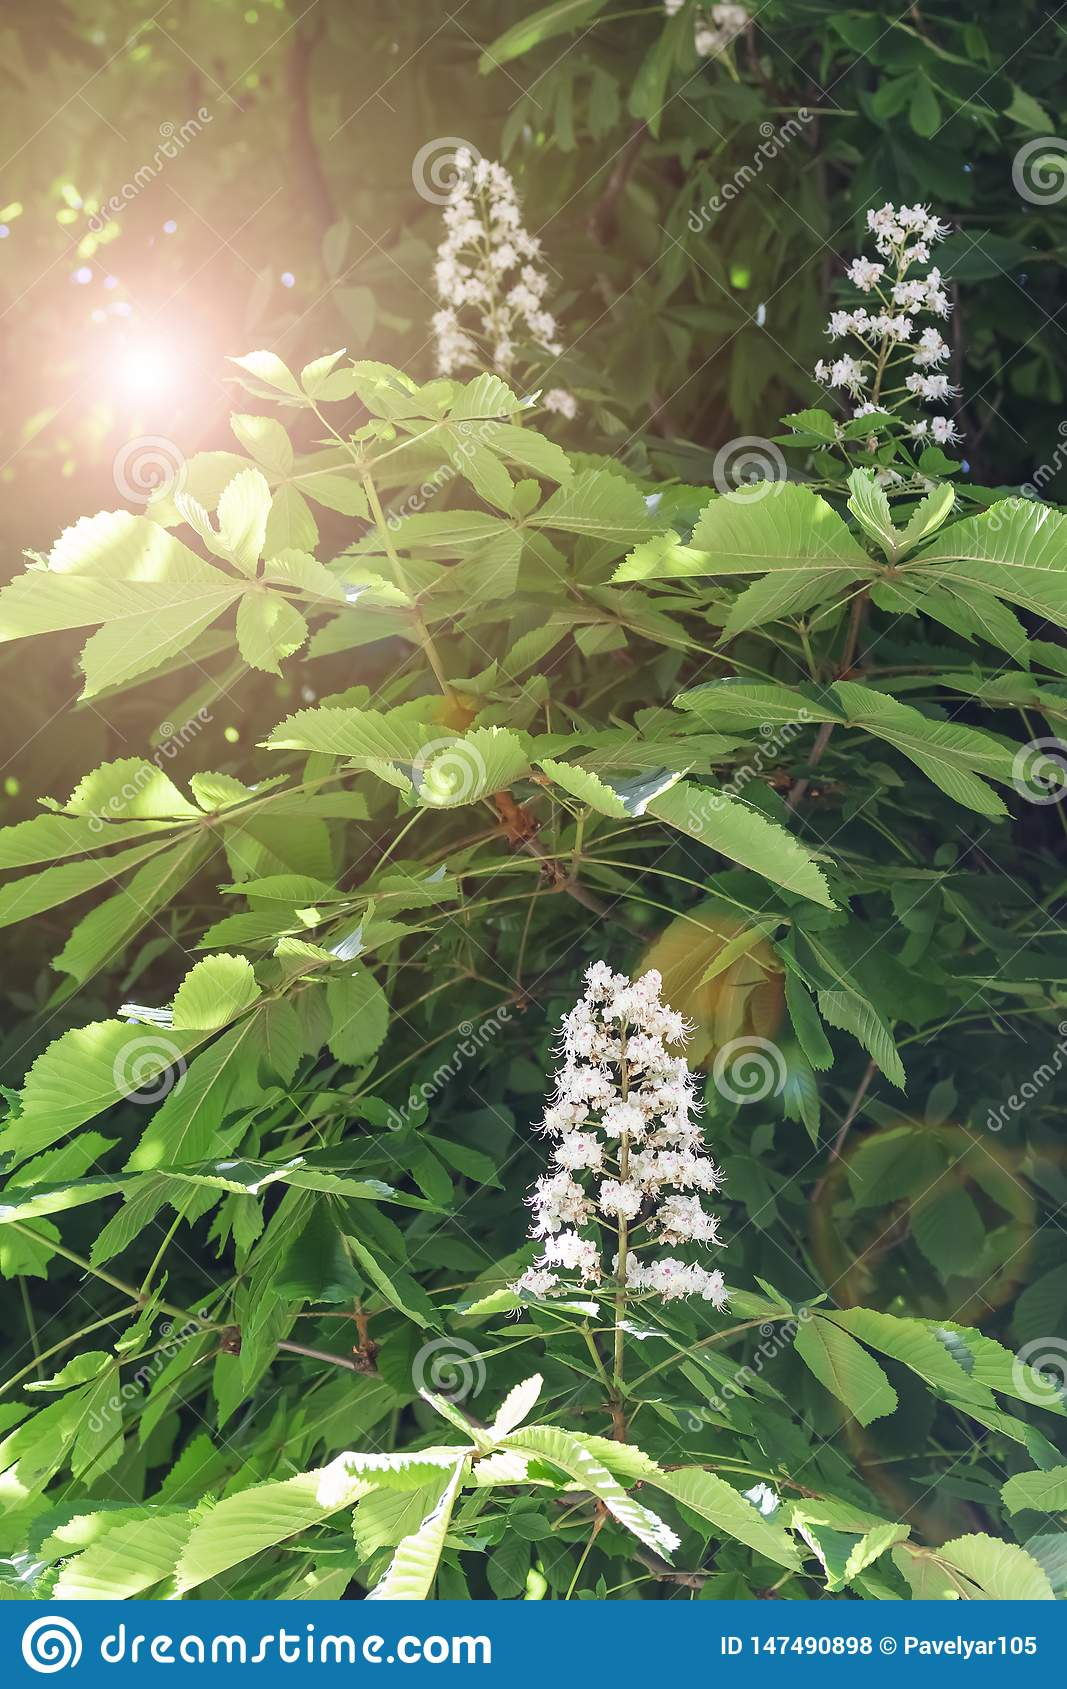 Horse chestnut white flowers on a branch with green foliage on